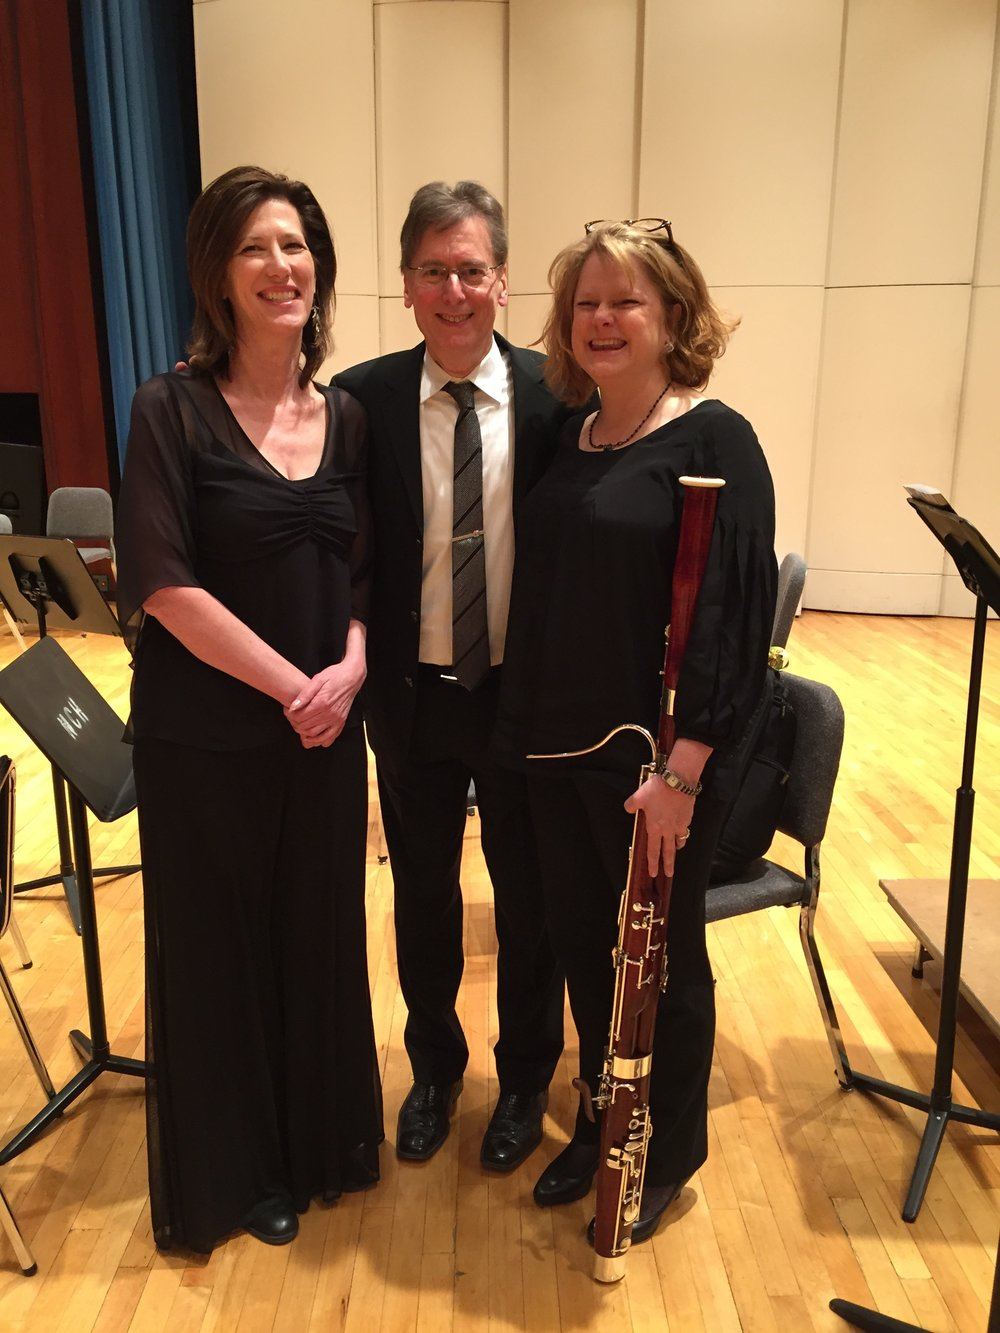 Mary Miller, flutist, and I with Robert Levin just after his amazing performances of the first three Beethoven piano concerti at the Reno Philharmonic (2015)